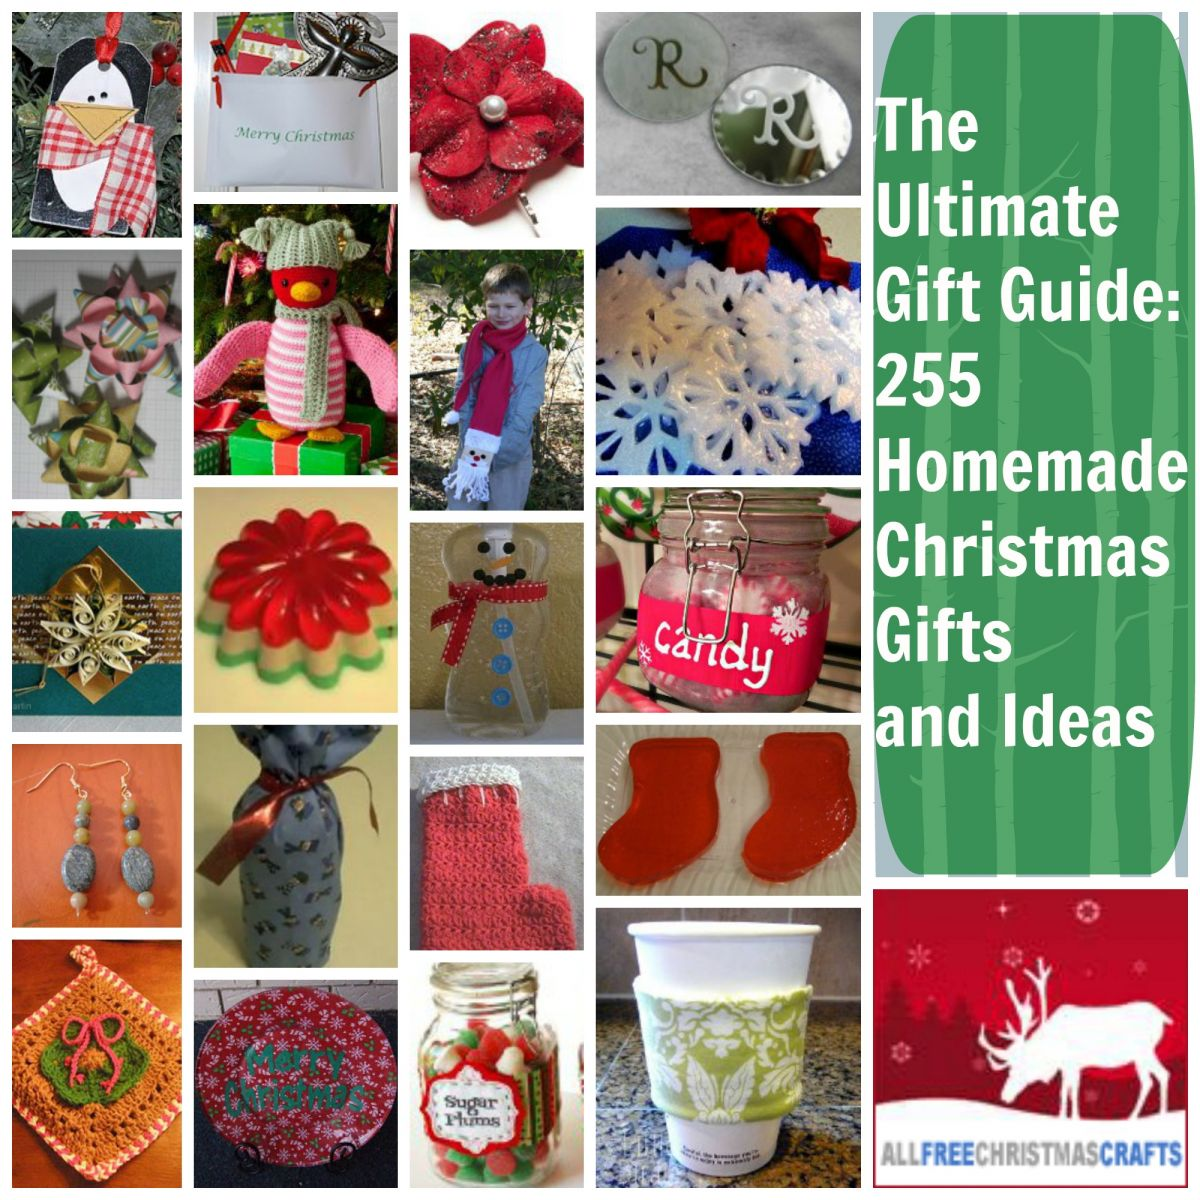 The ultimate gift guide 255 homemade christmas gifts and Homemade christmas gifts